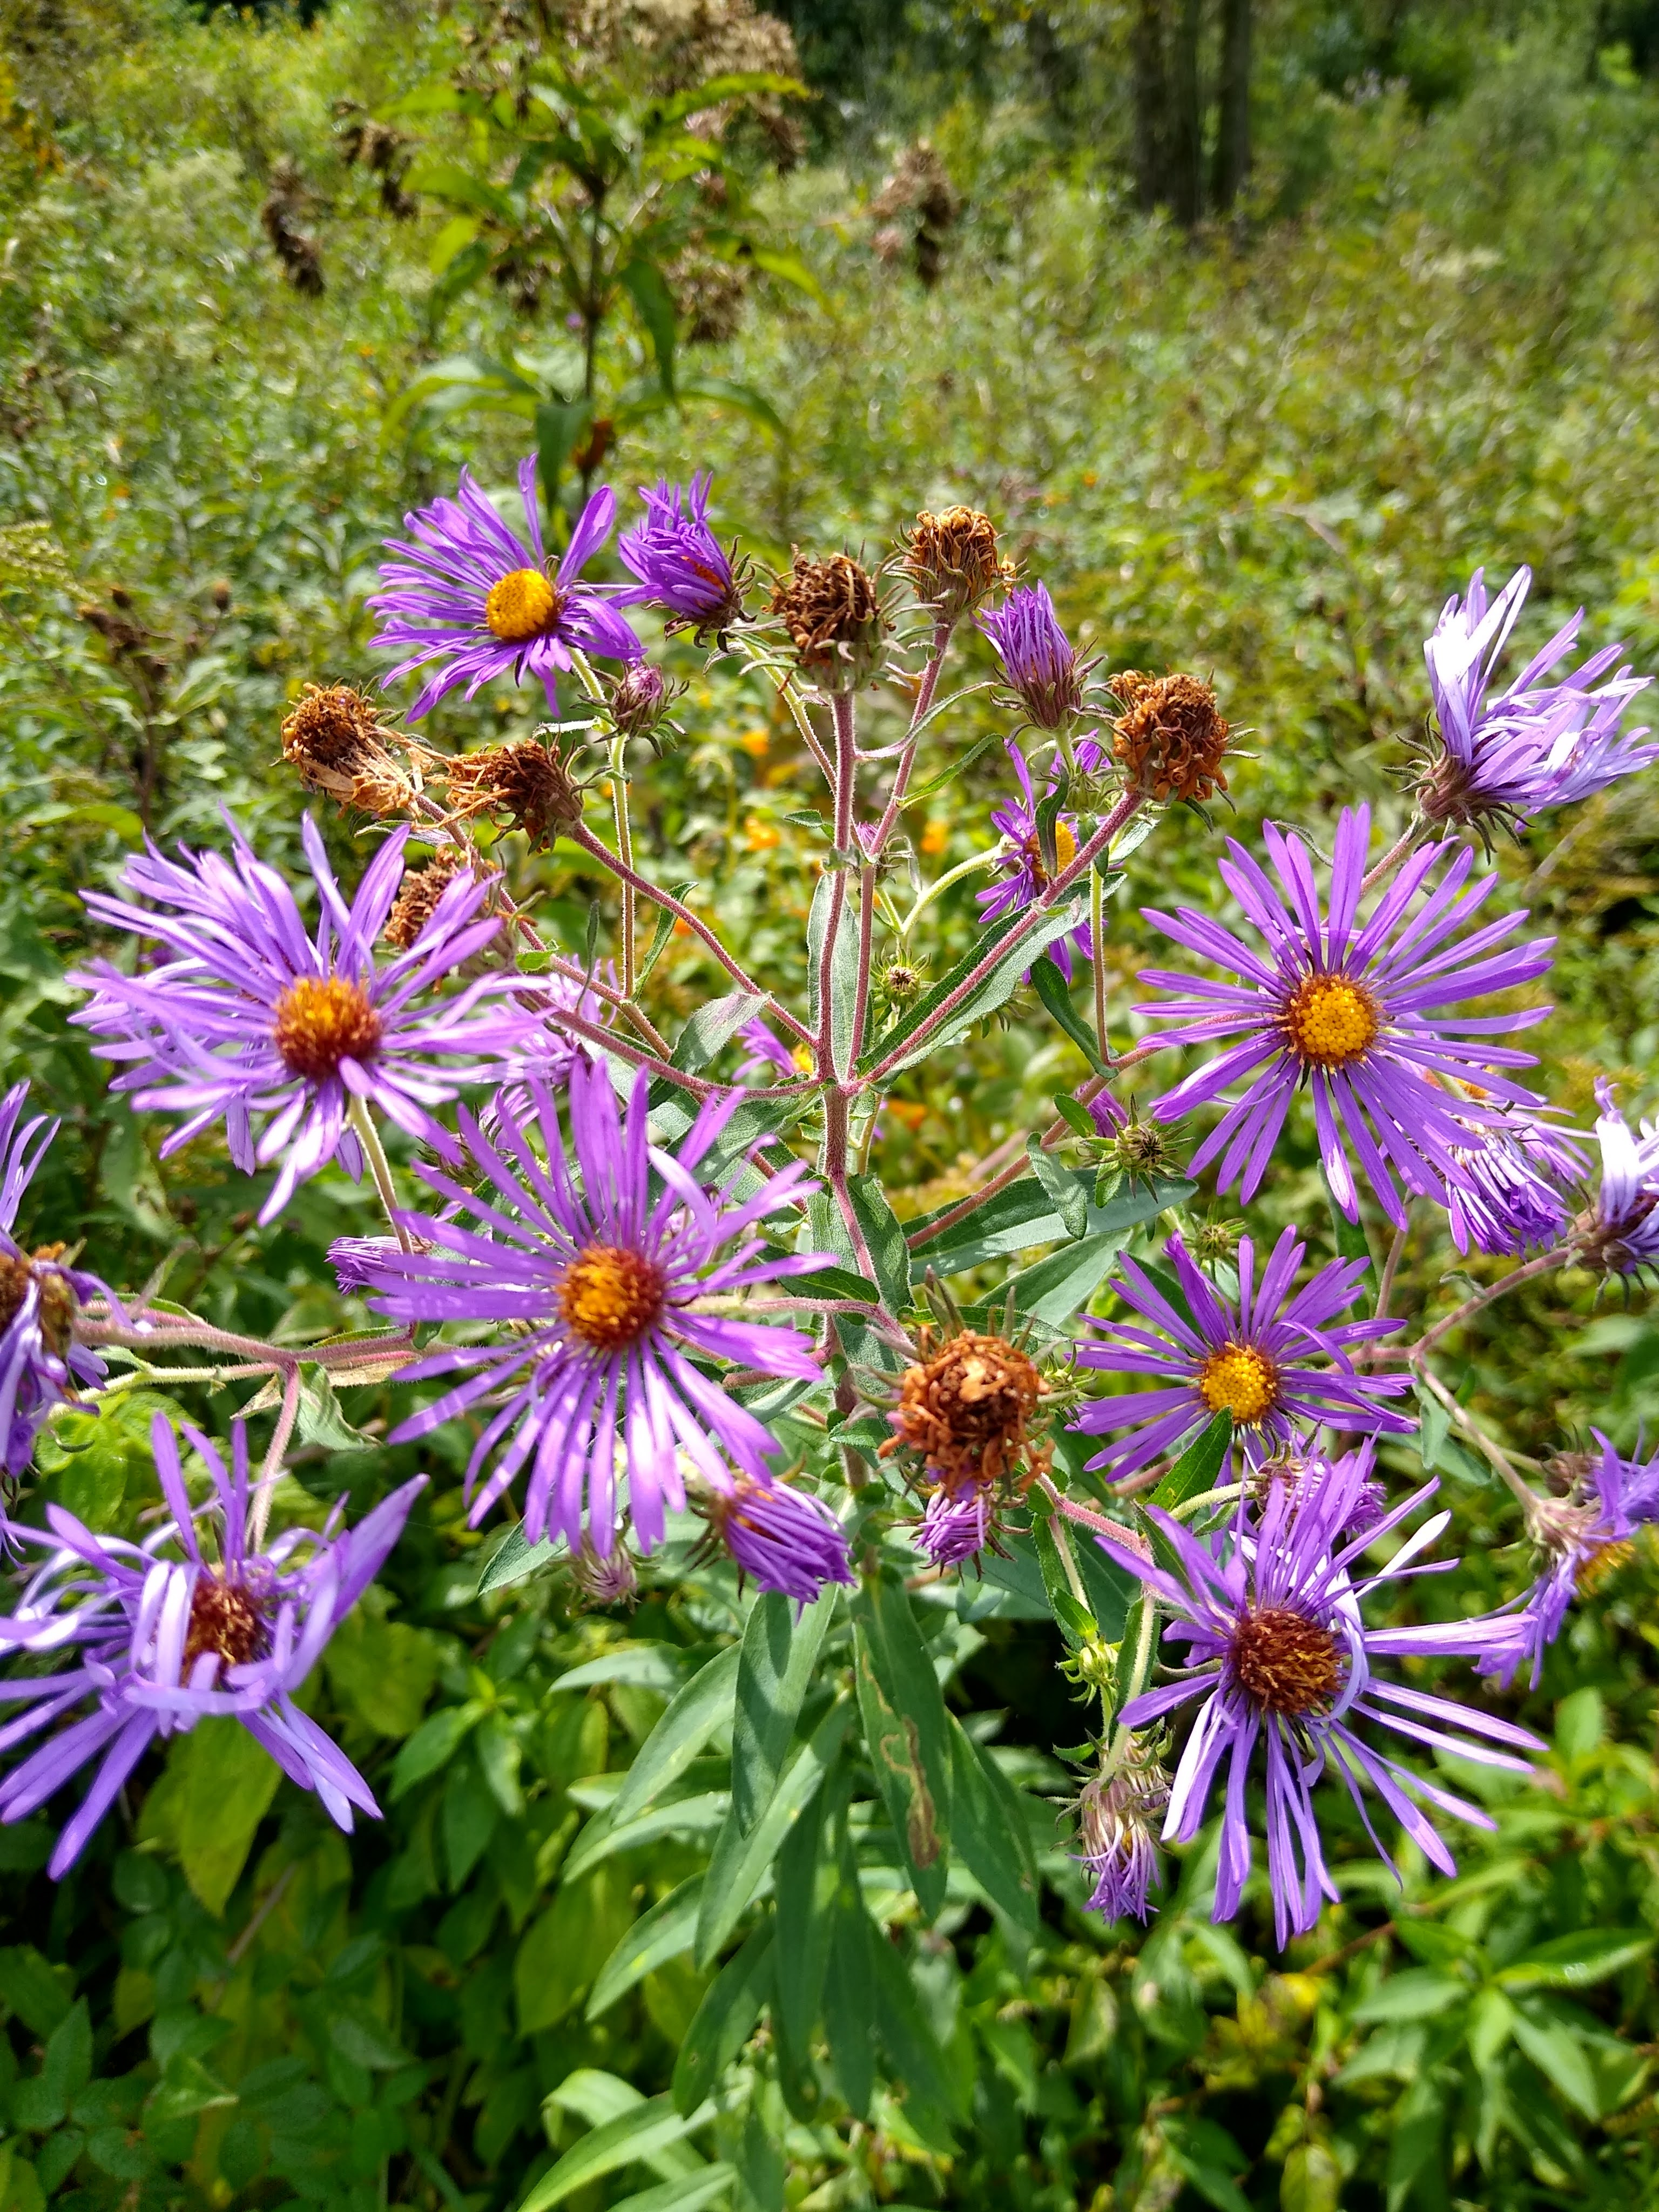 purple and yellow aster flowers